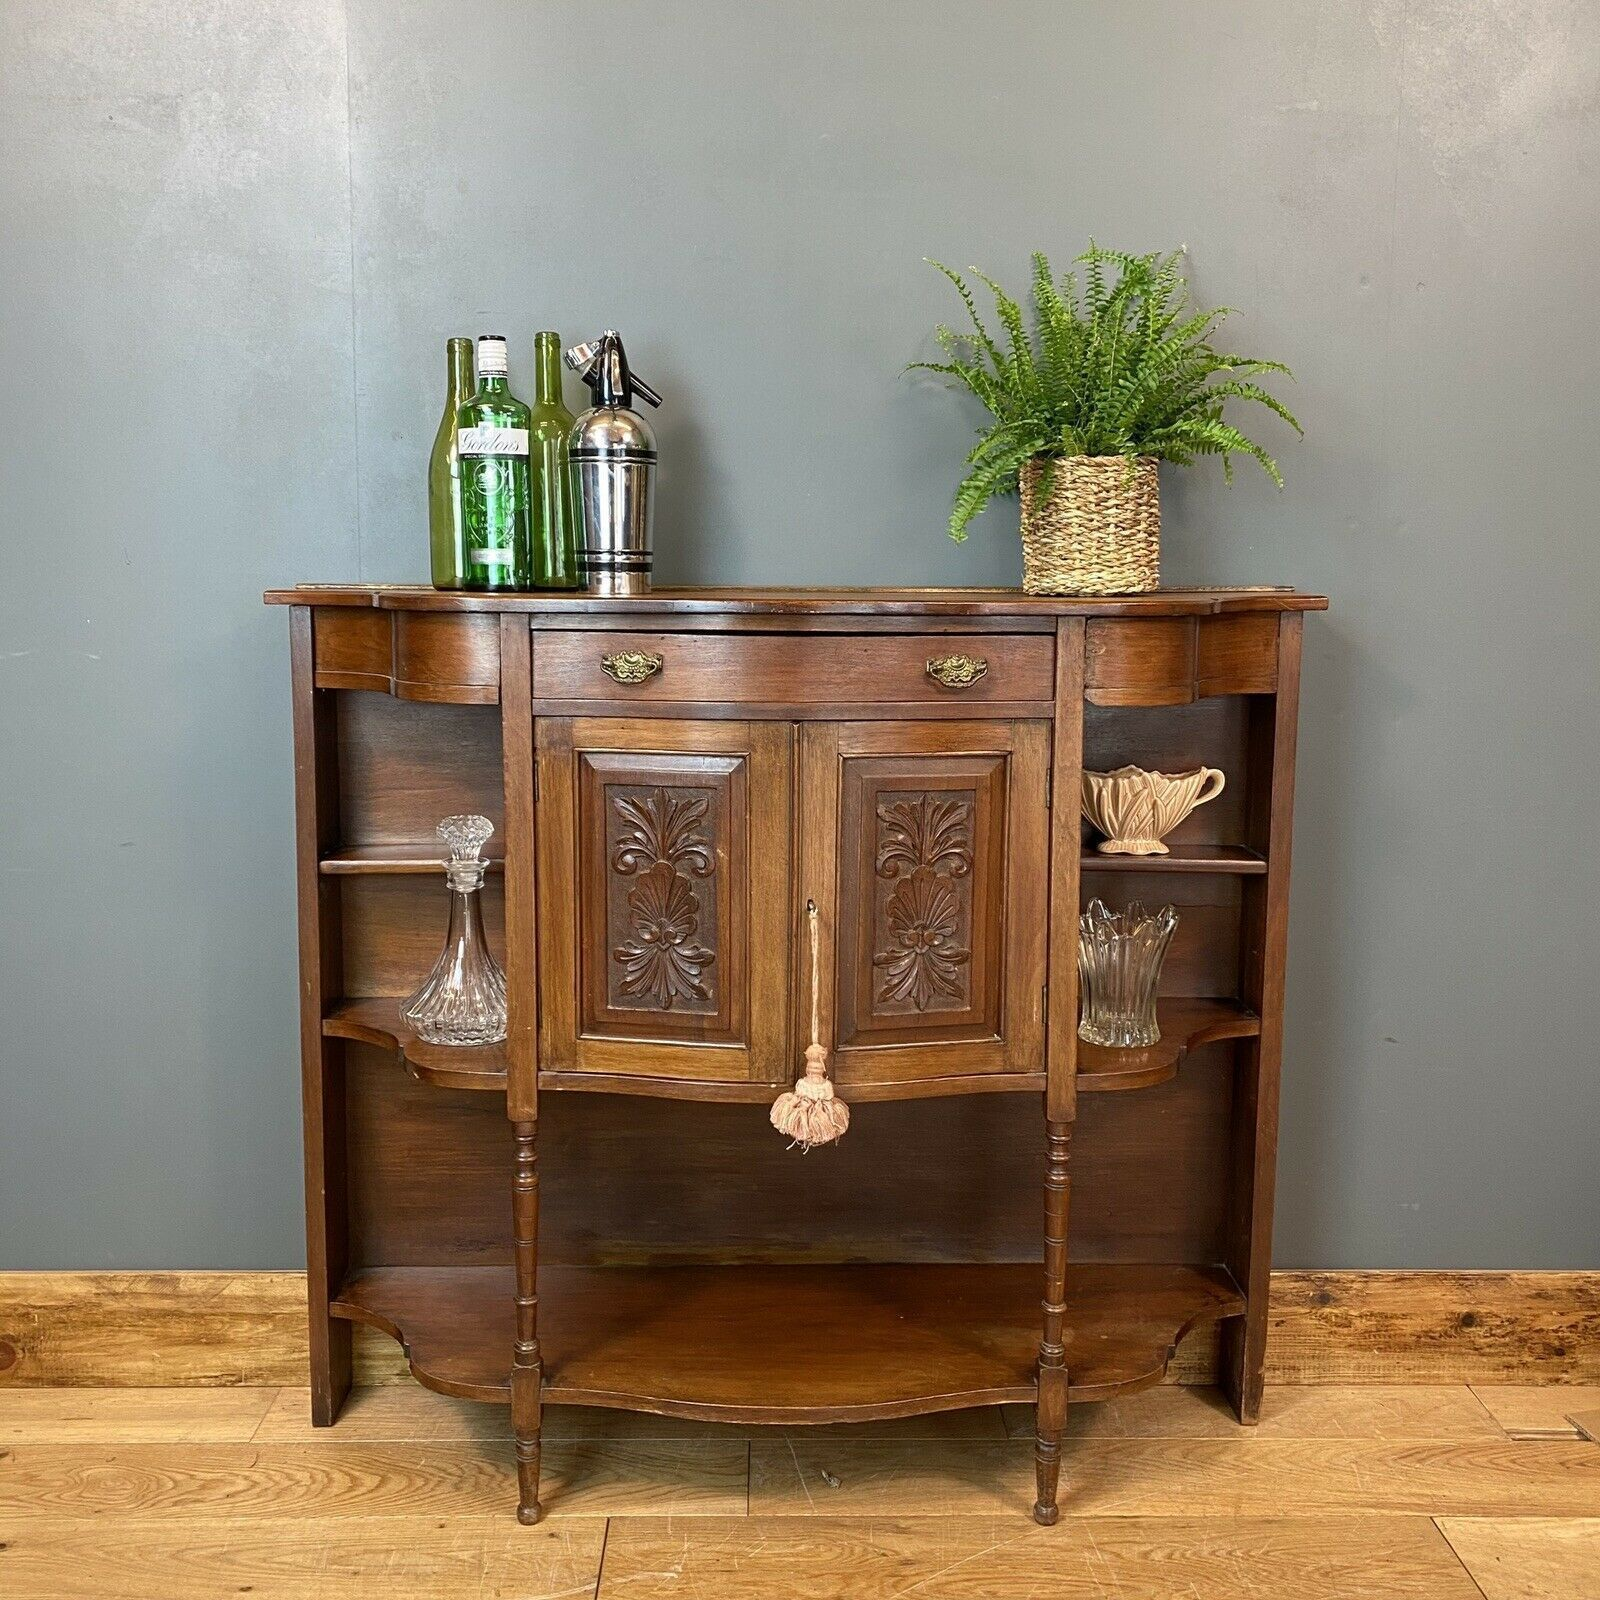 Picture of: Antique Mahogany Sideboard Edwardian Chiffonier Buffet Server Drinks Cabinet Unknown Vinterior